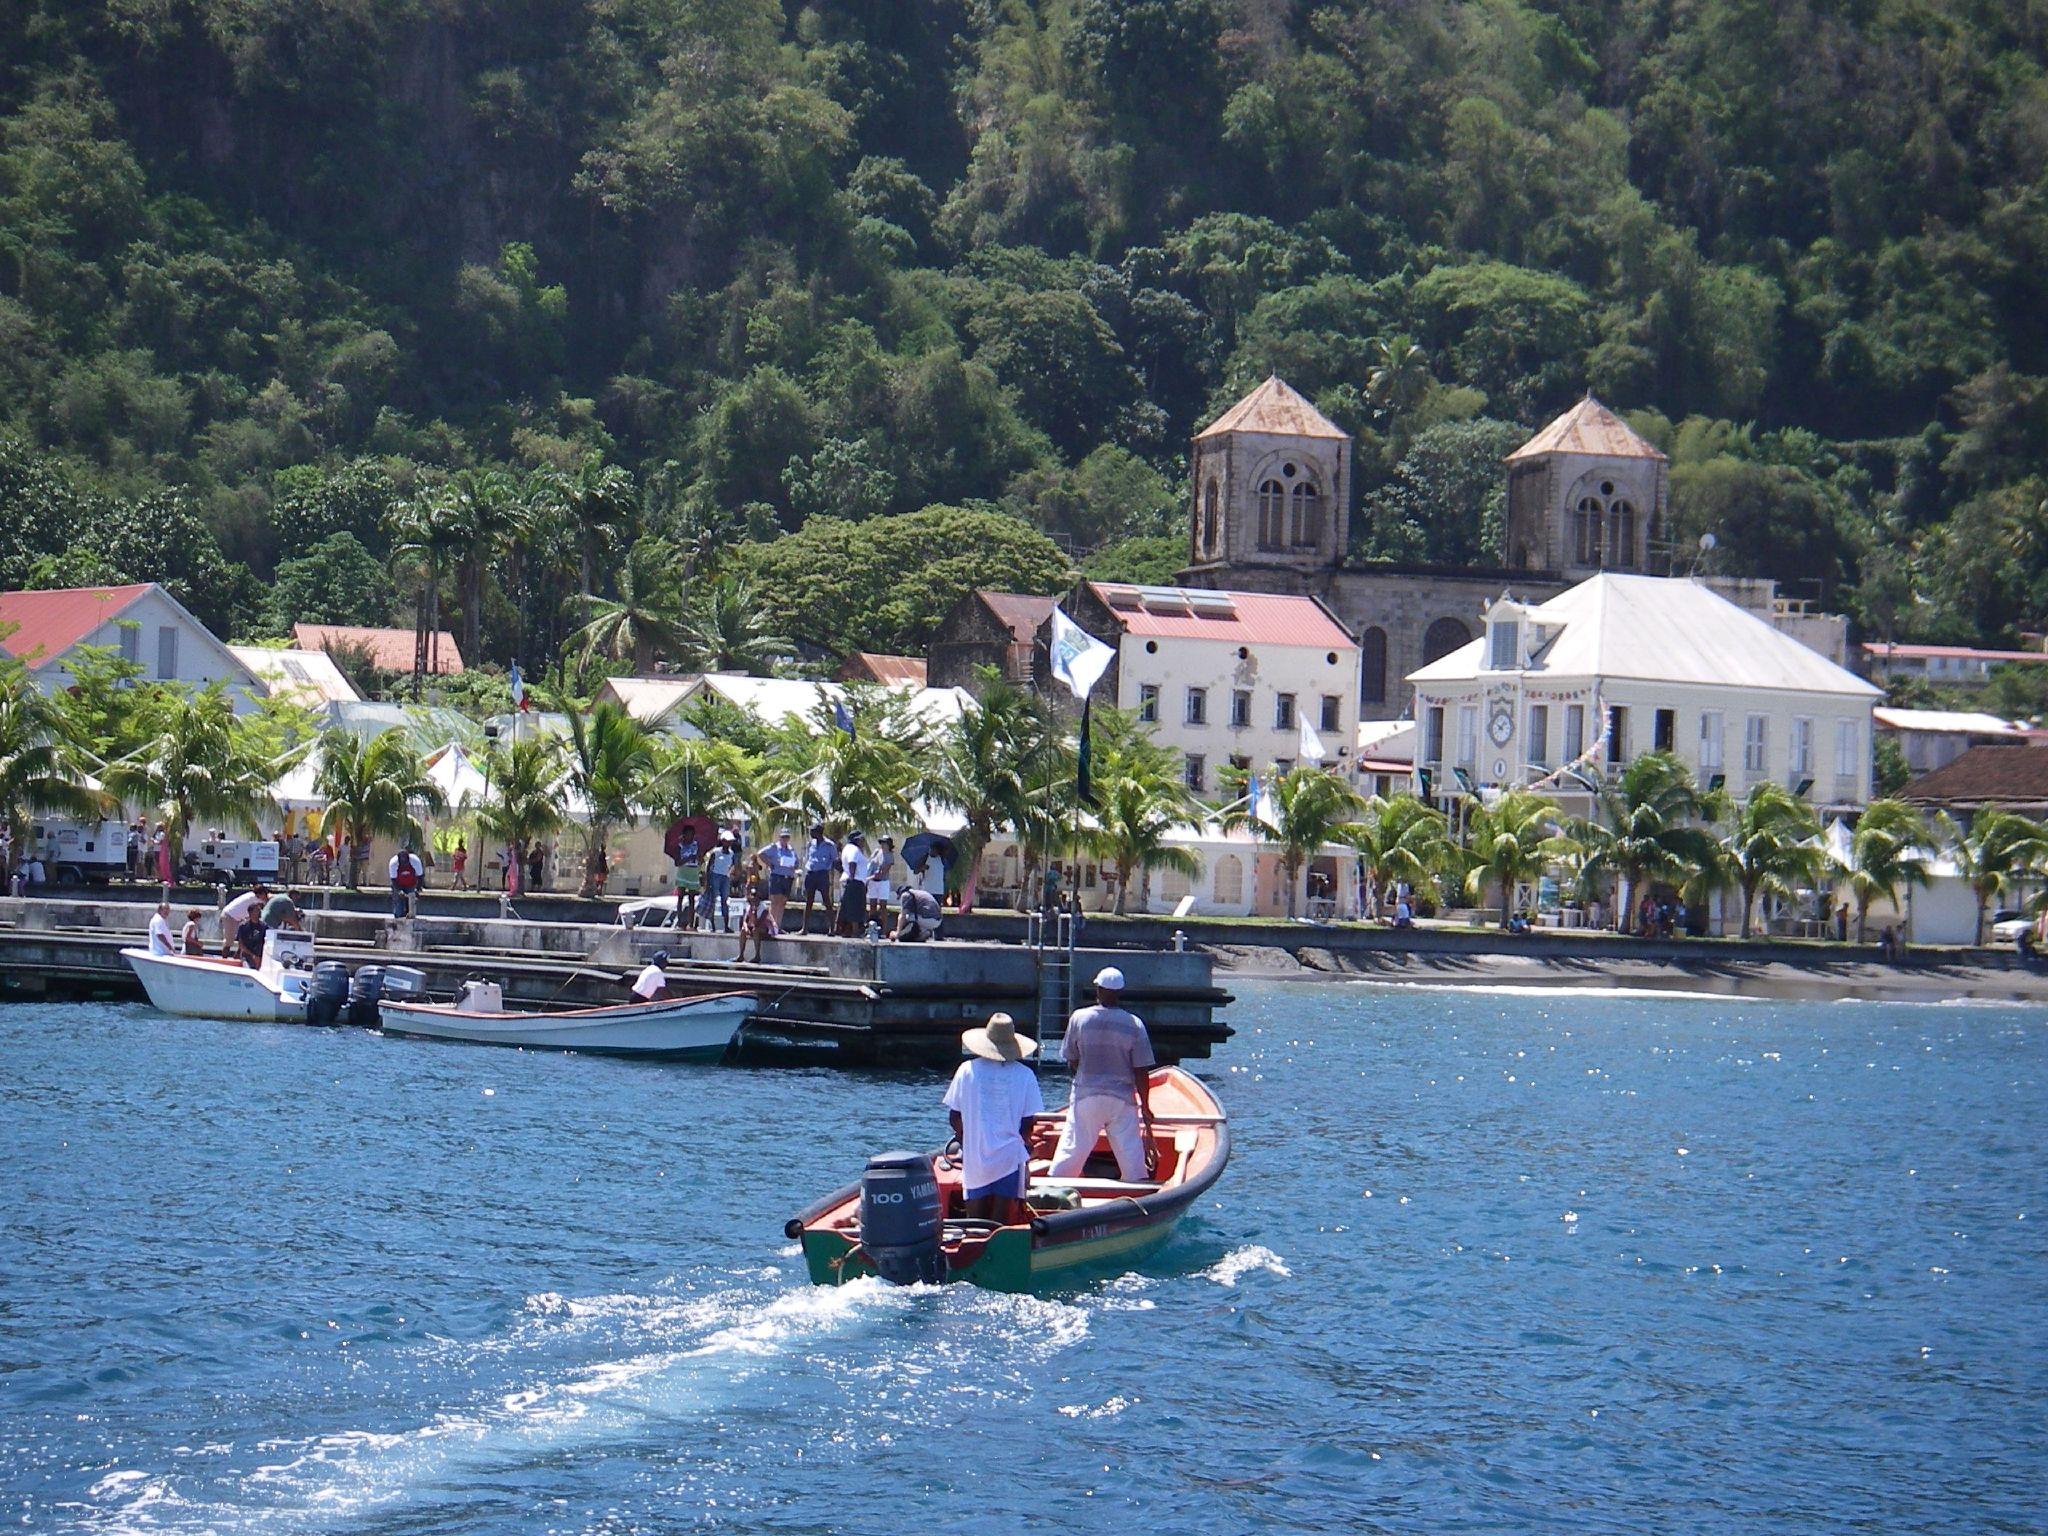 Before the total destruction of Saint-Pierre in 1902 by a volcanic eruption, it was the most important city of Martinique culturally and economically, being known as